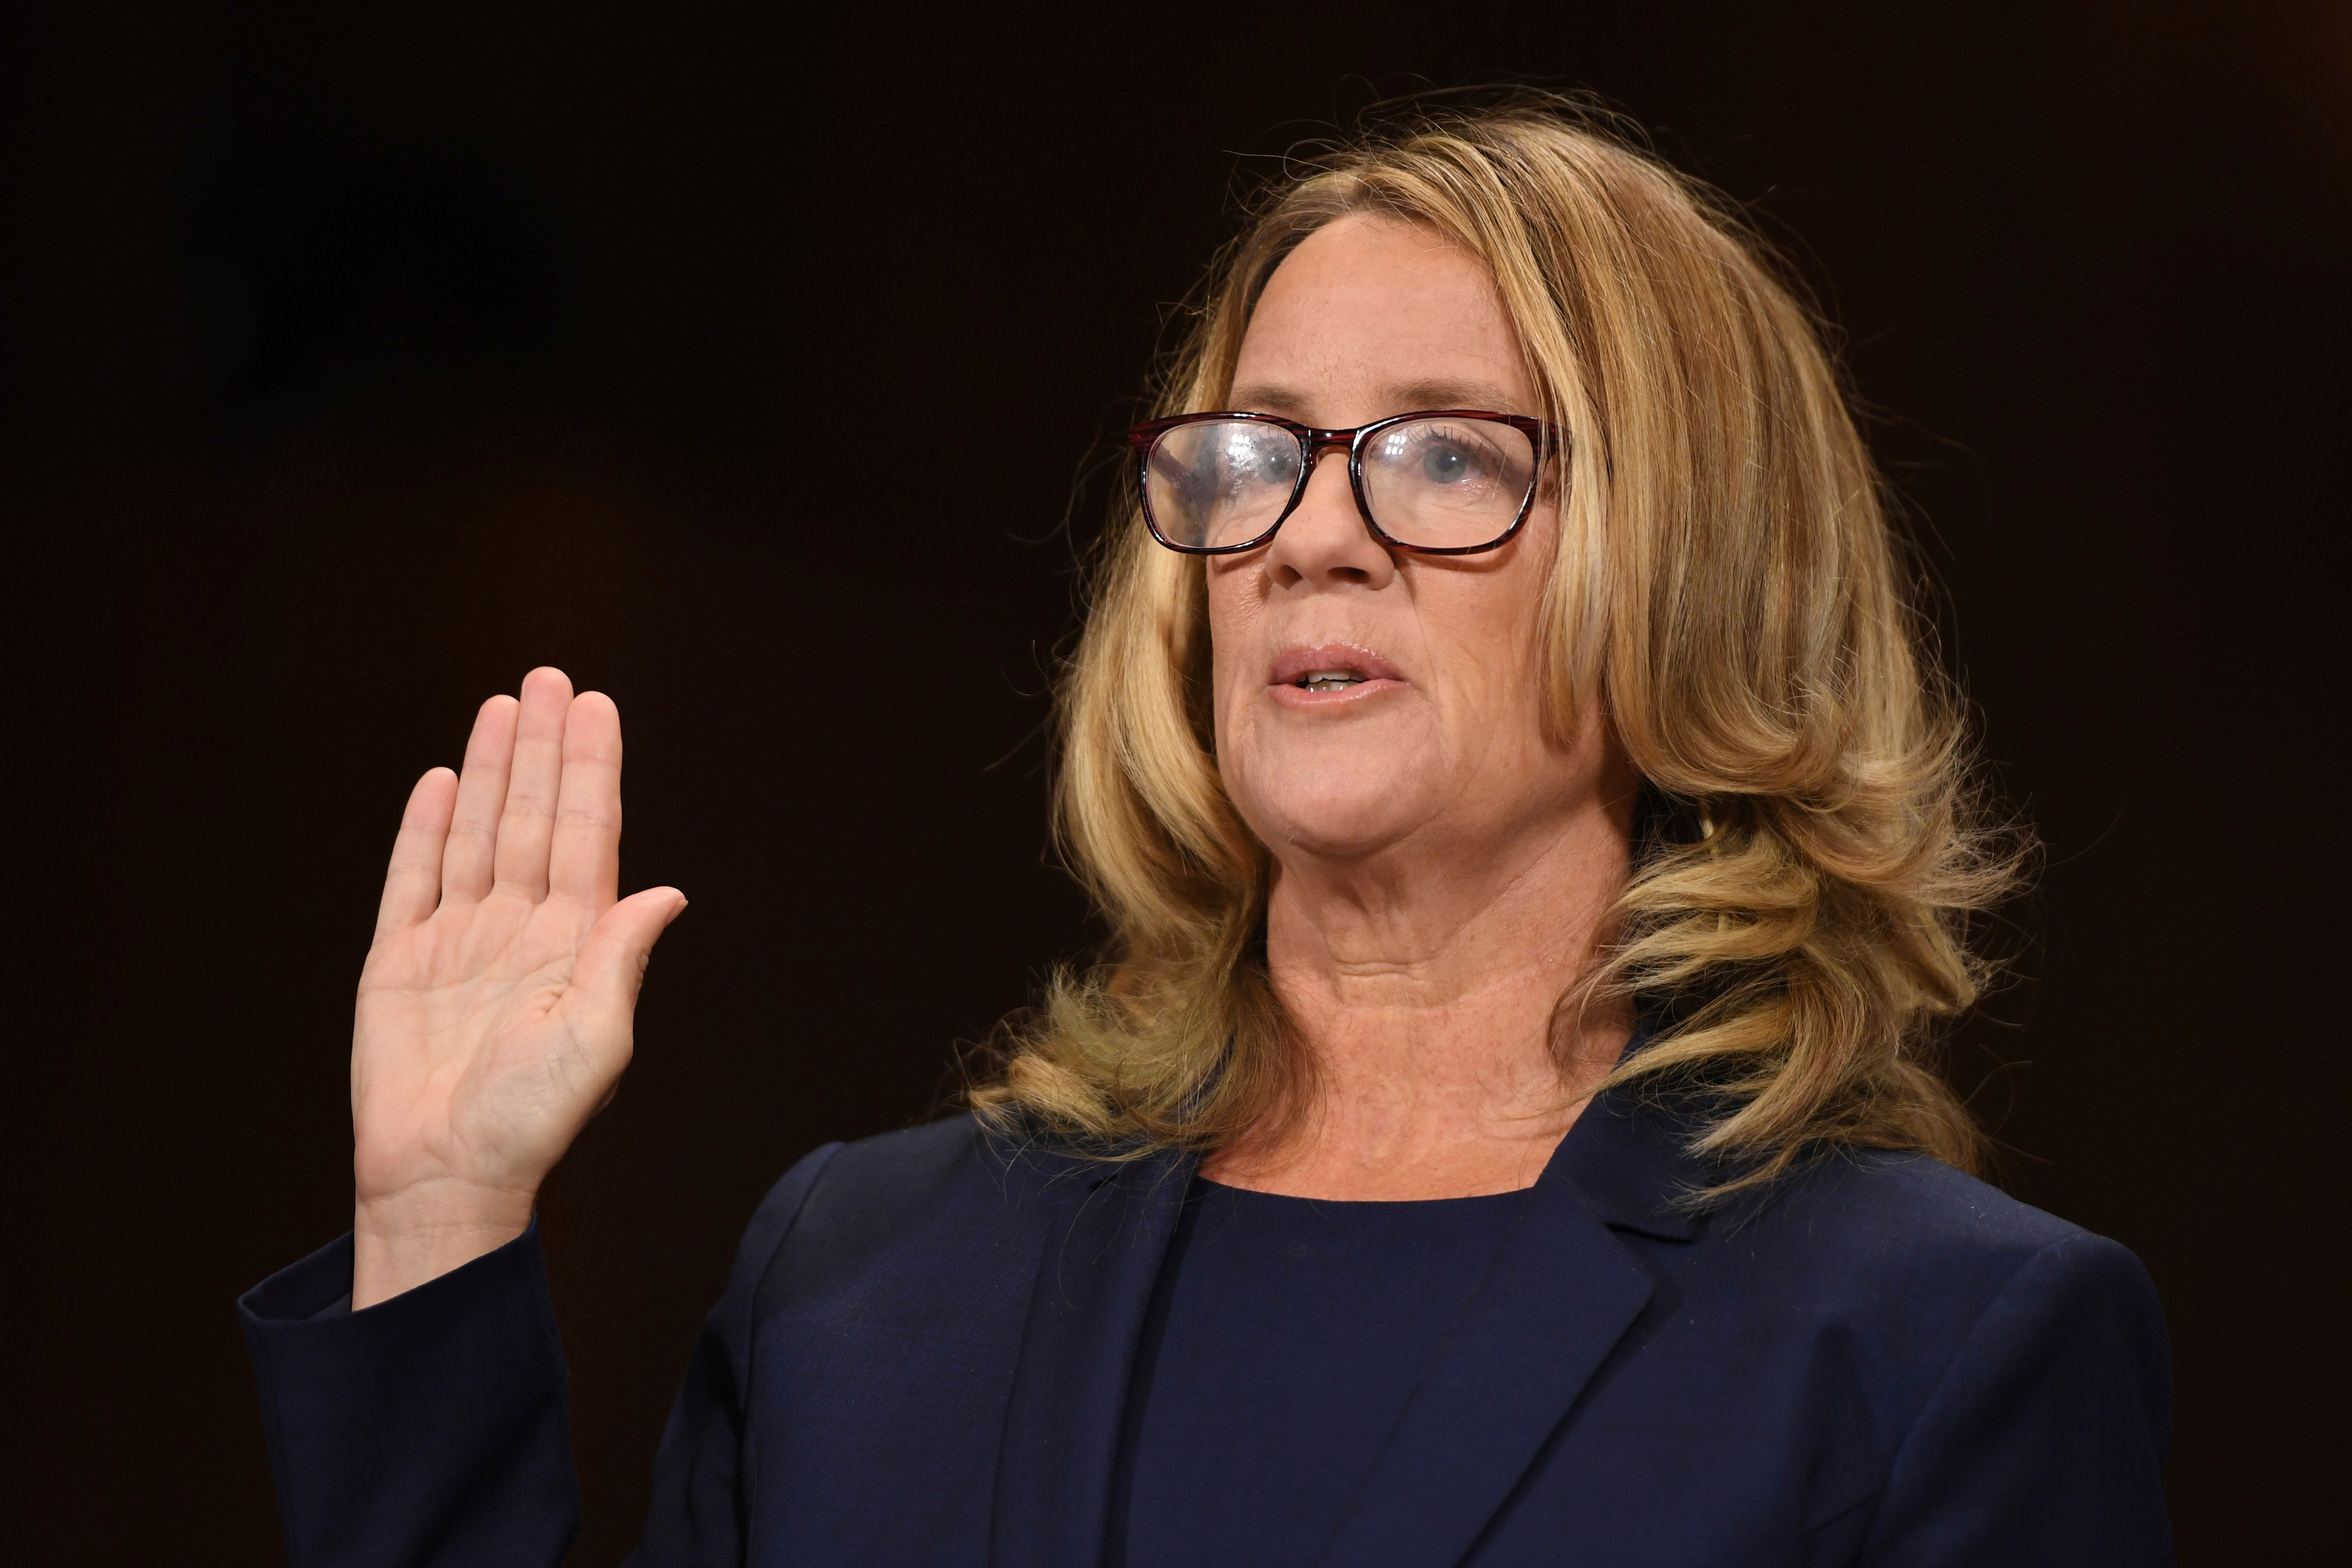 Christine Blasey Ford testified before the Senate Judiciary Committee on Capitol Hill in Washington, on Sept. 27, 2018.